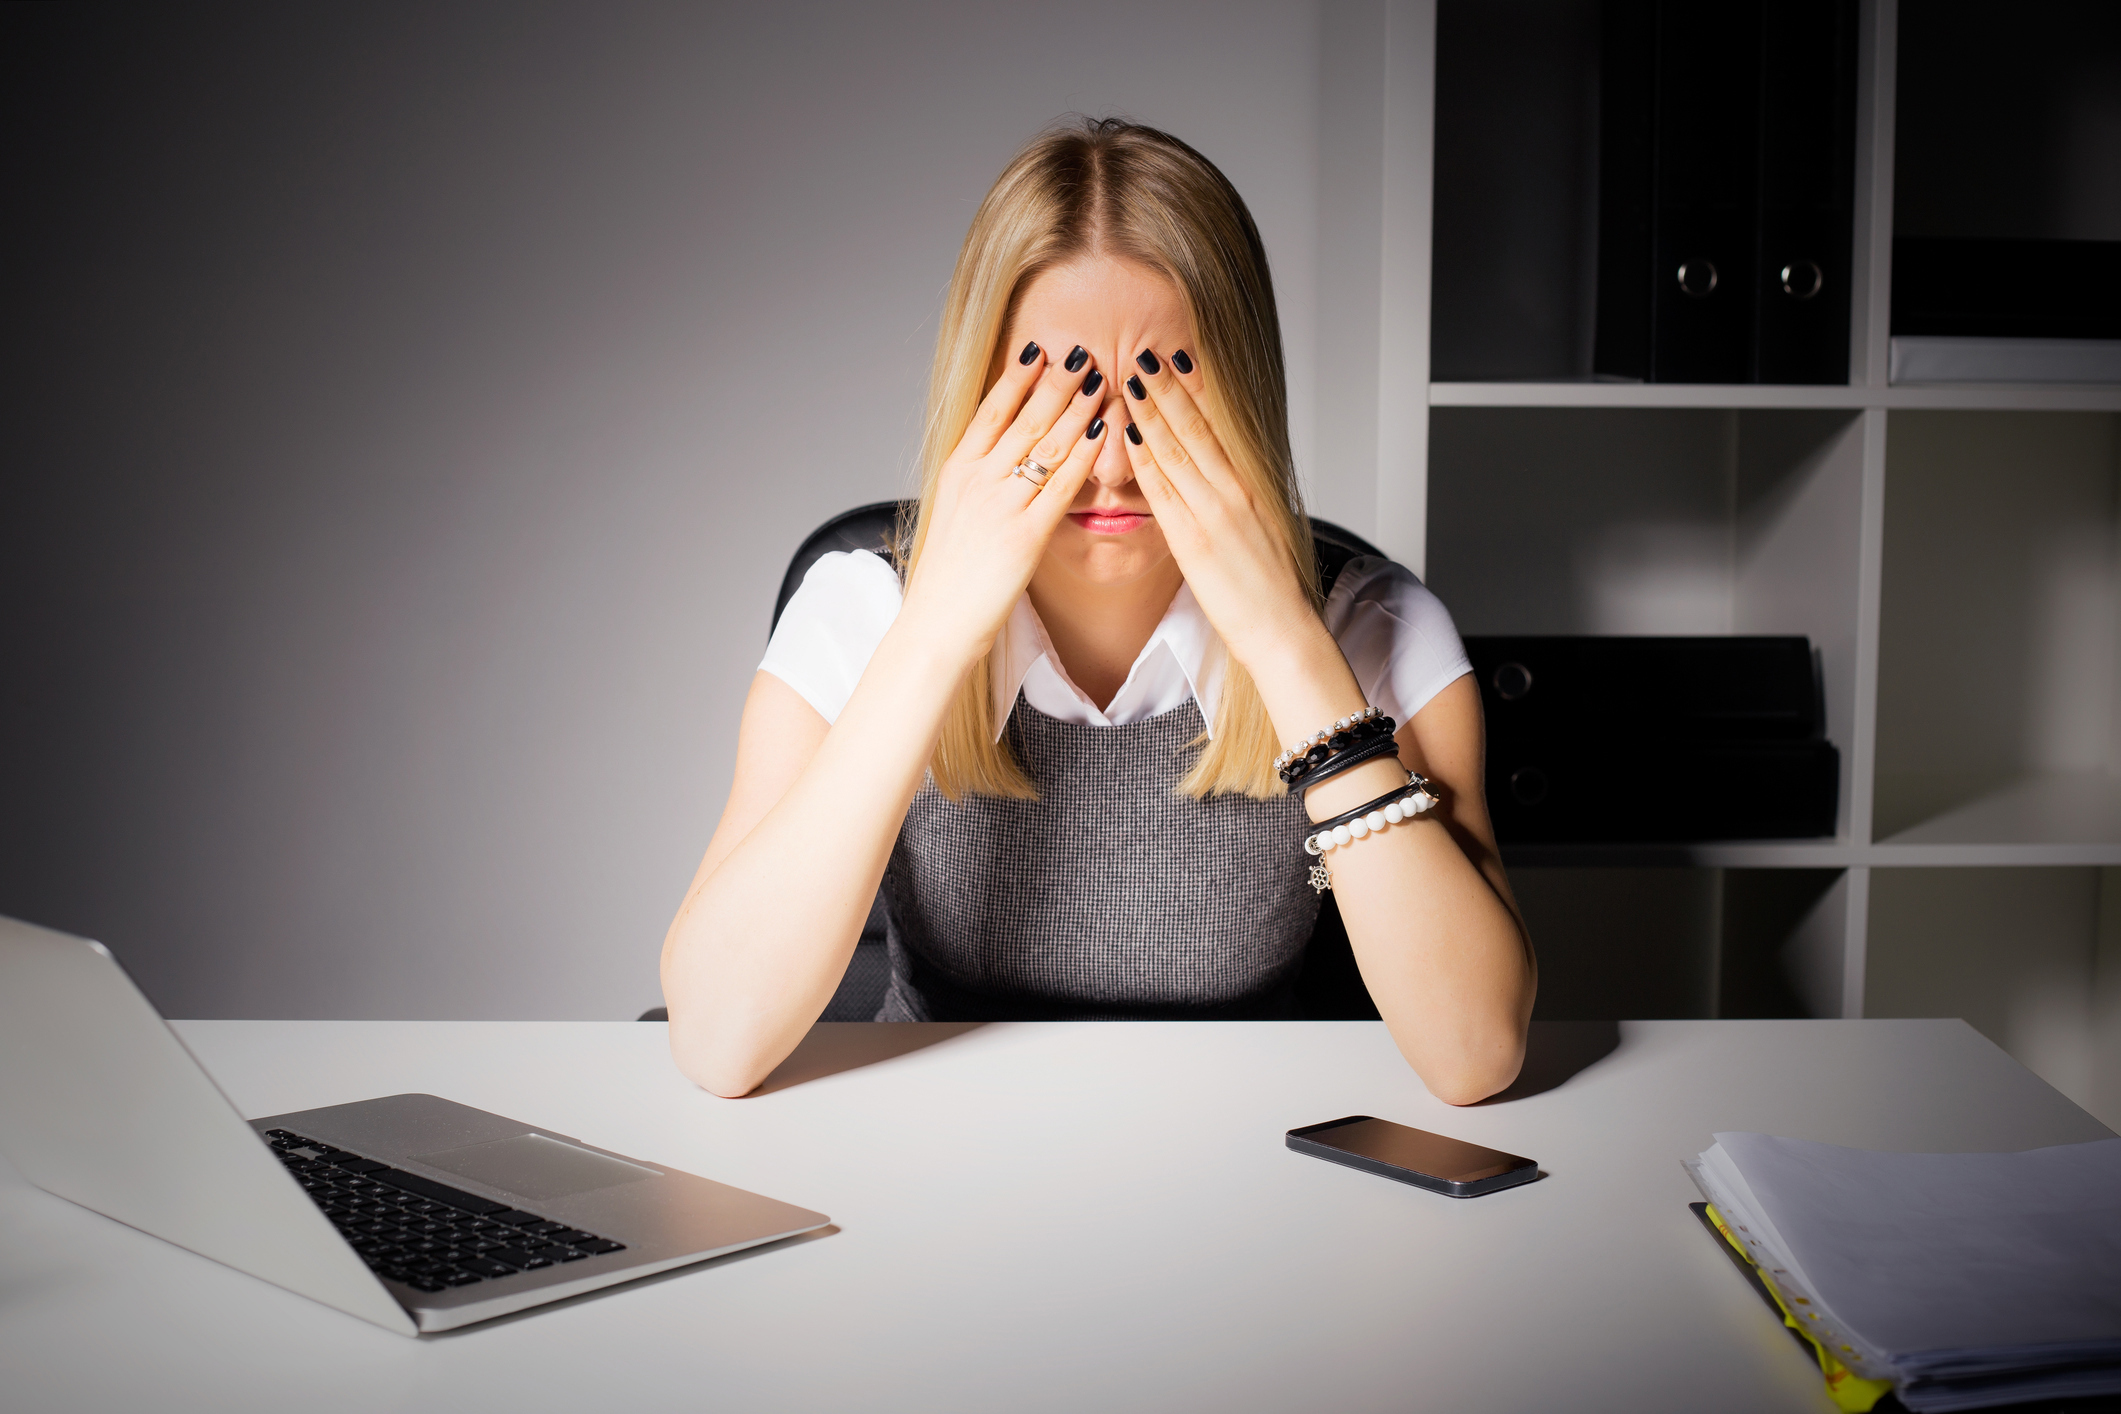 Over-stressed at work? 6 practical steps to help manage stress in the workplace